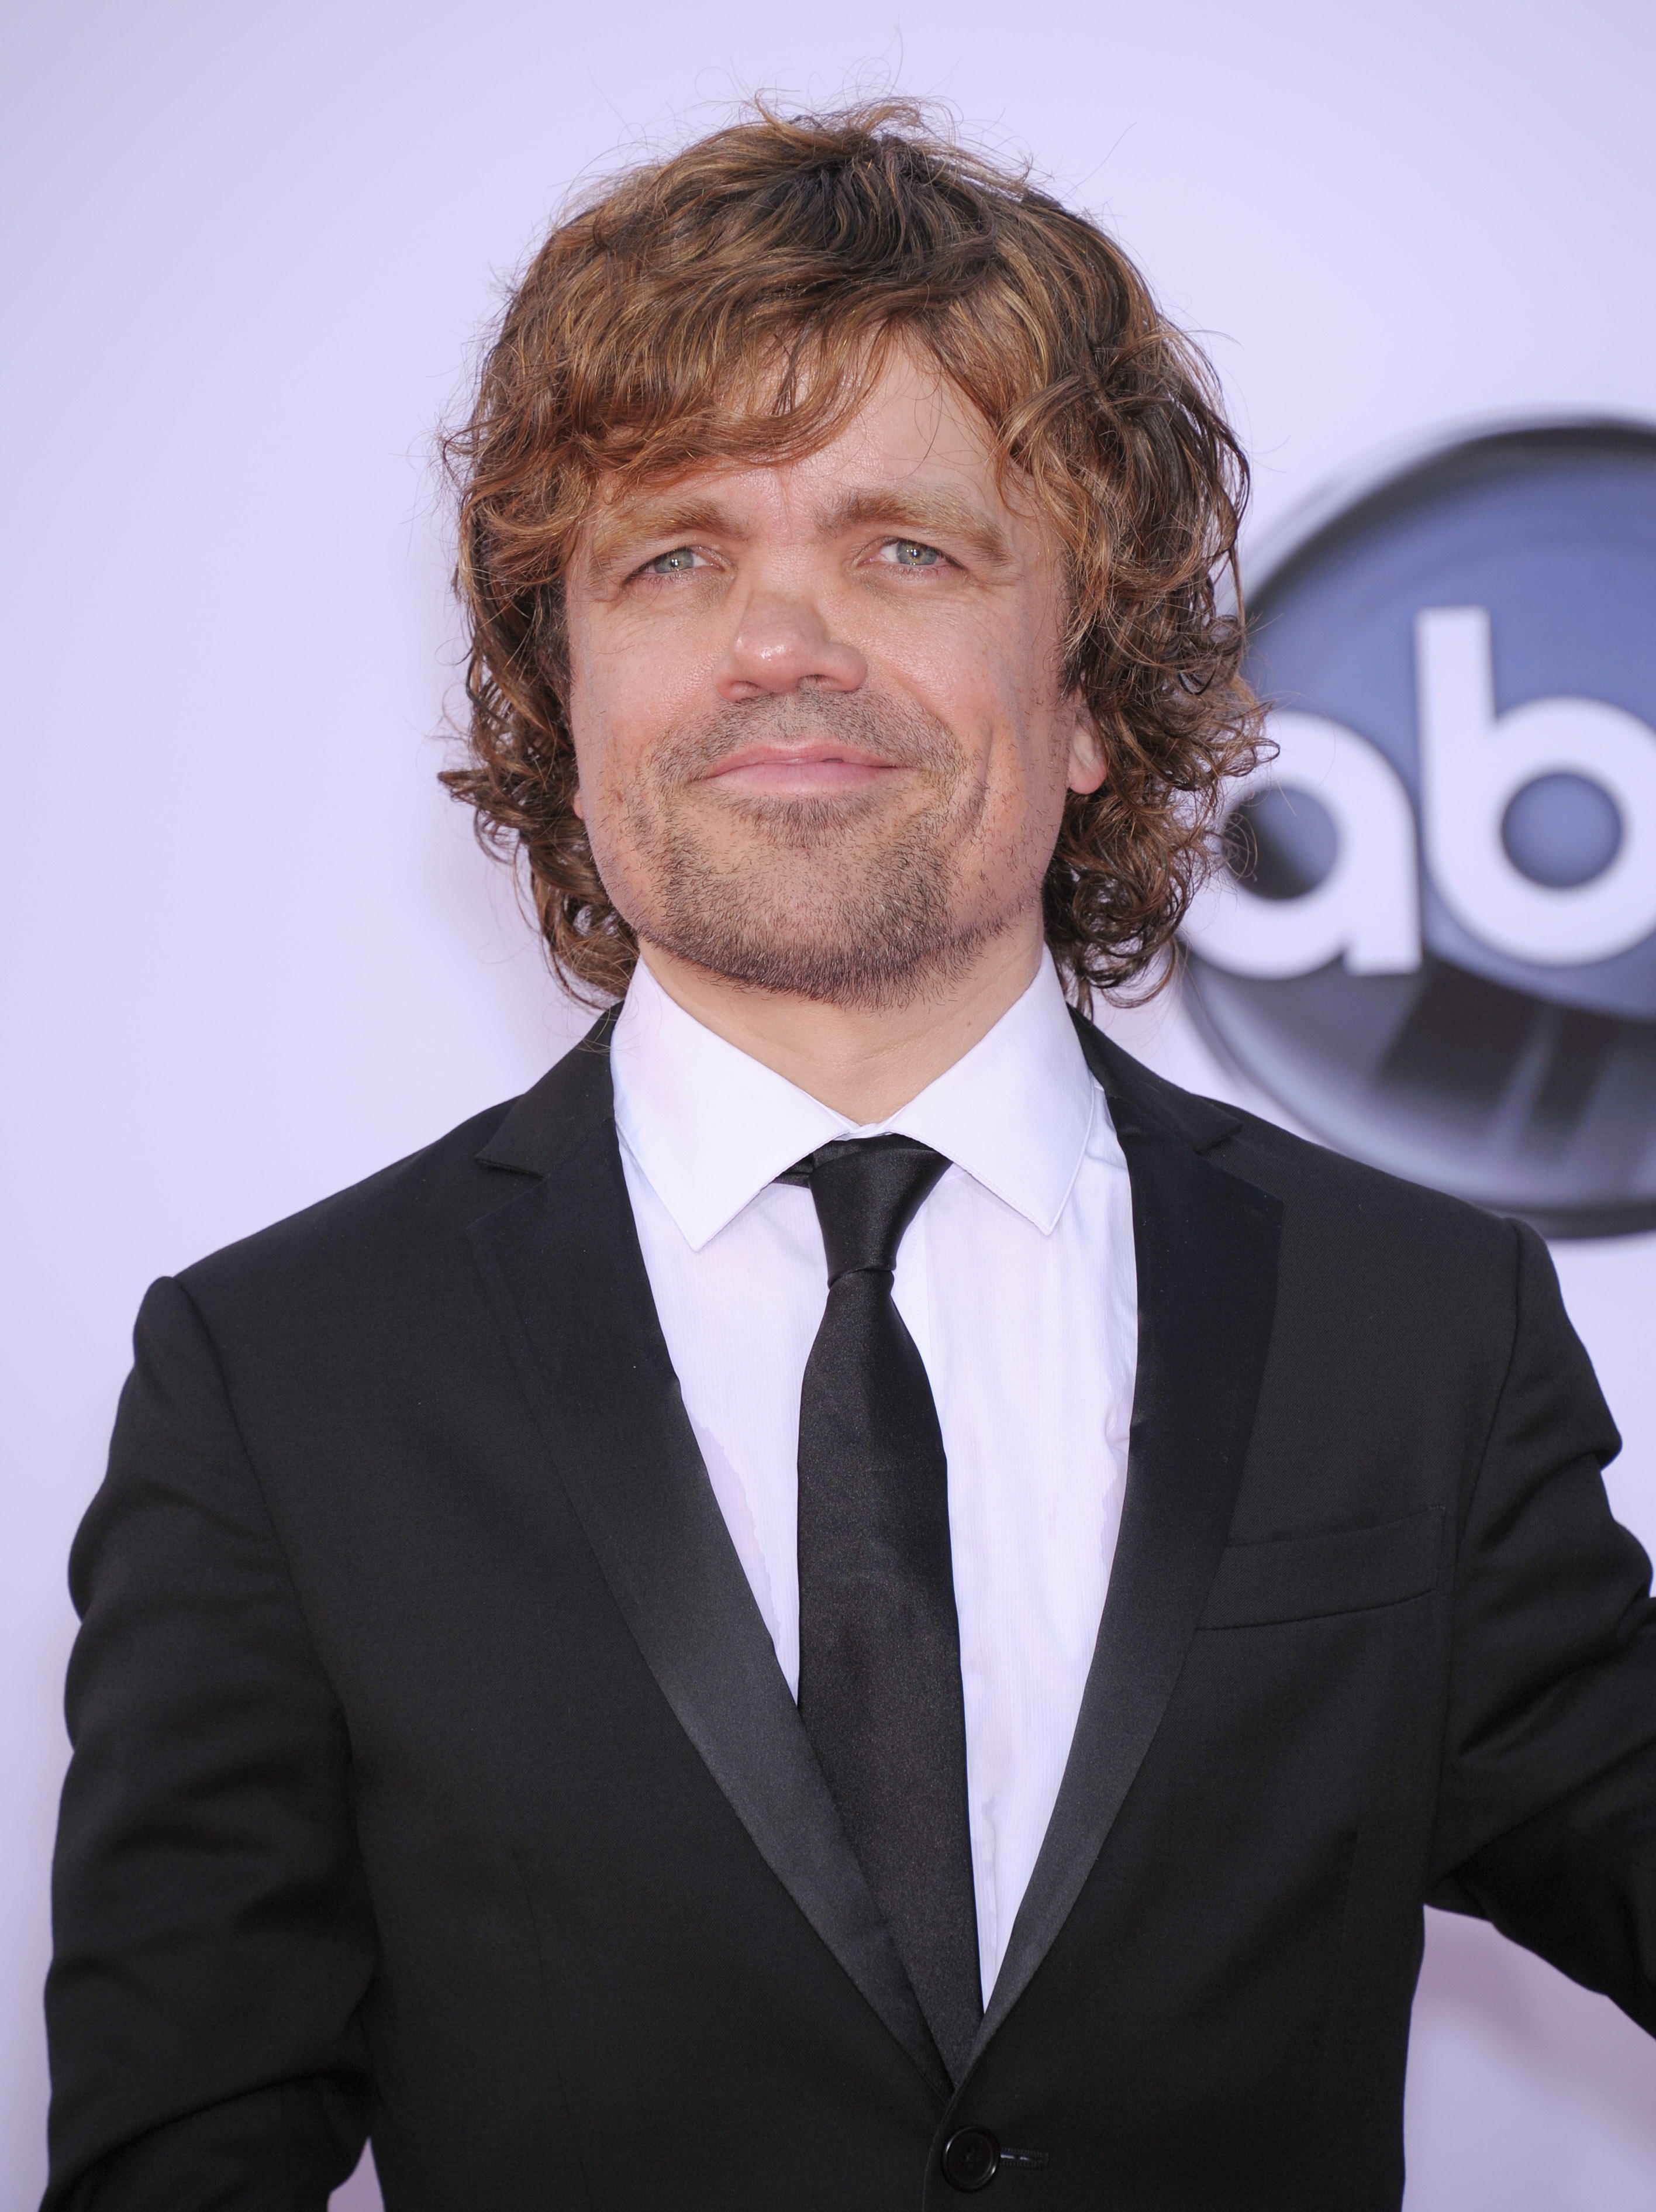 Peter Dinklage PNG High Quality Image   PNG All